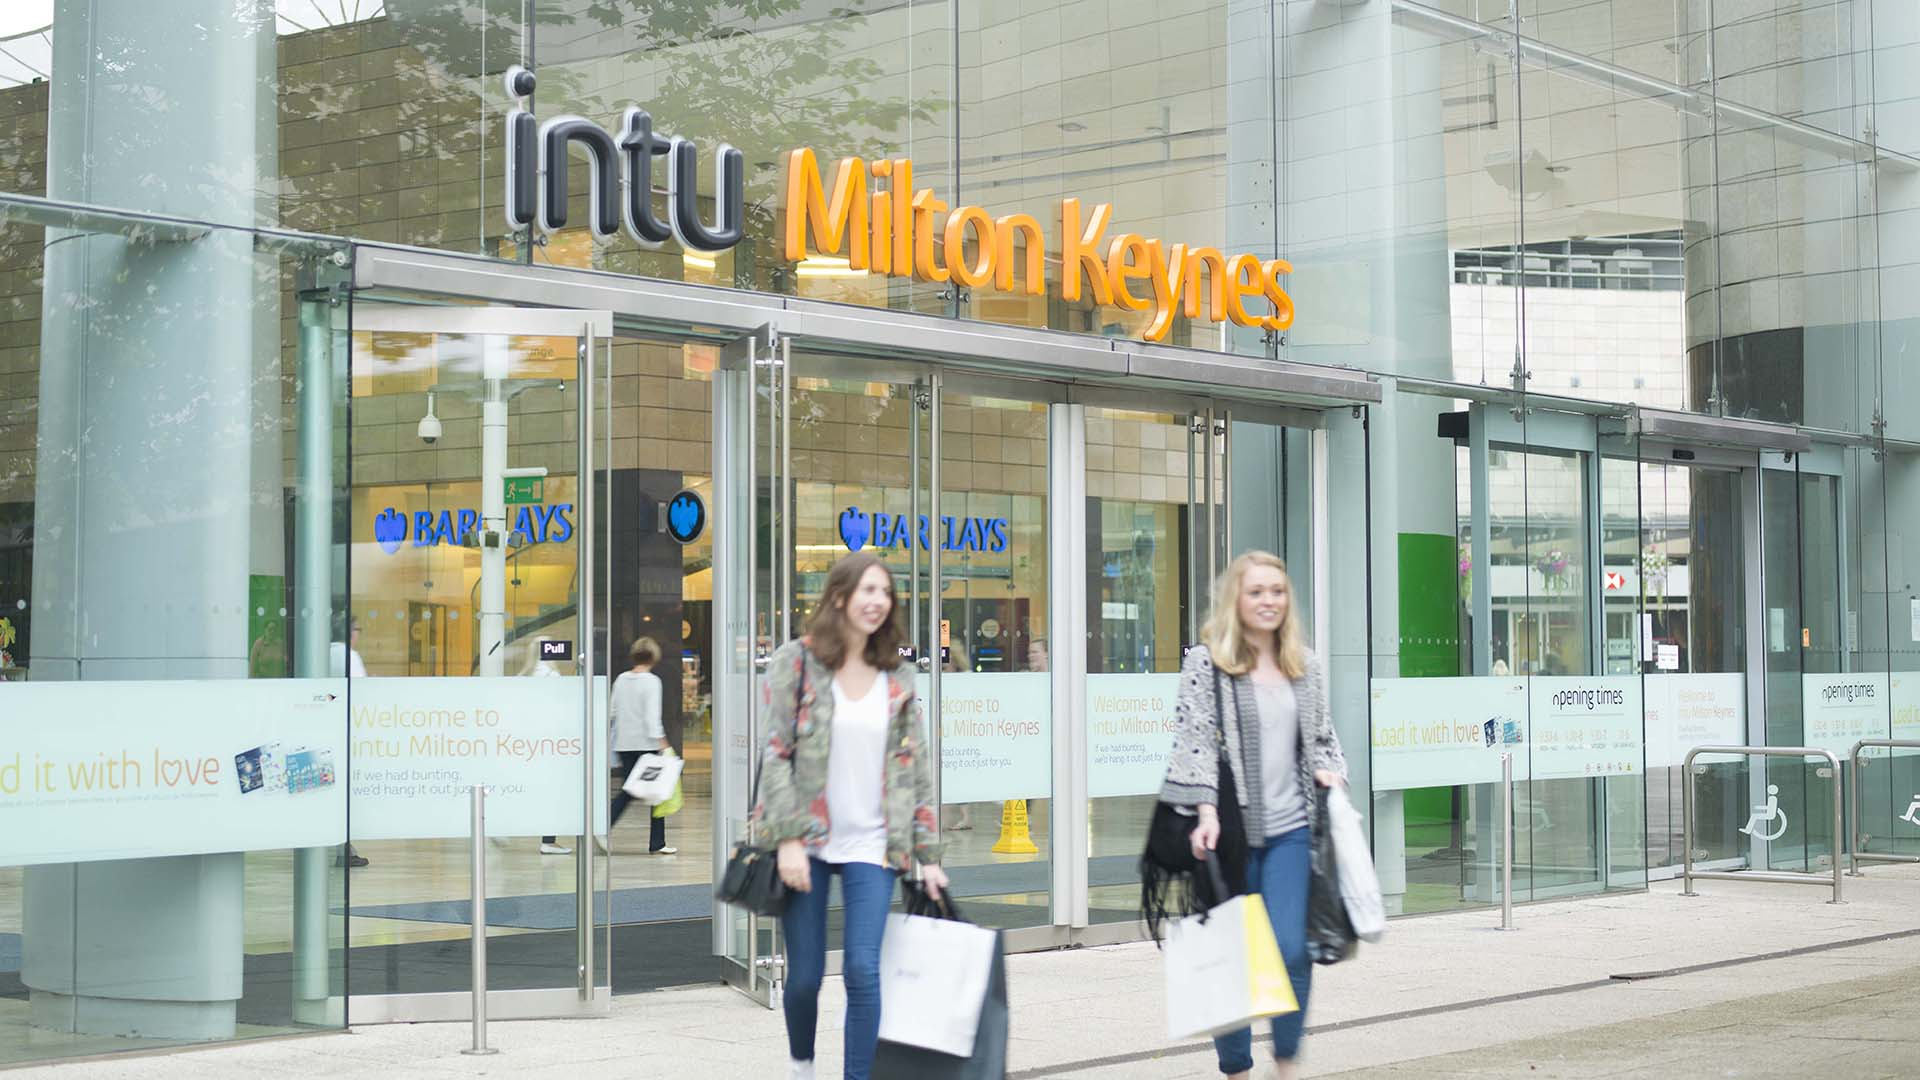 intu Milton Keynes transfers to new operator